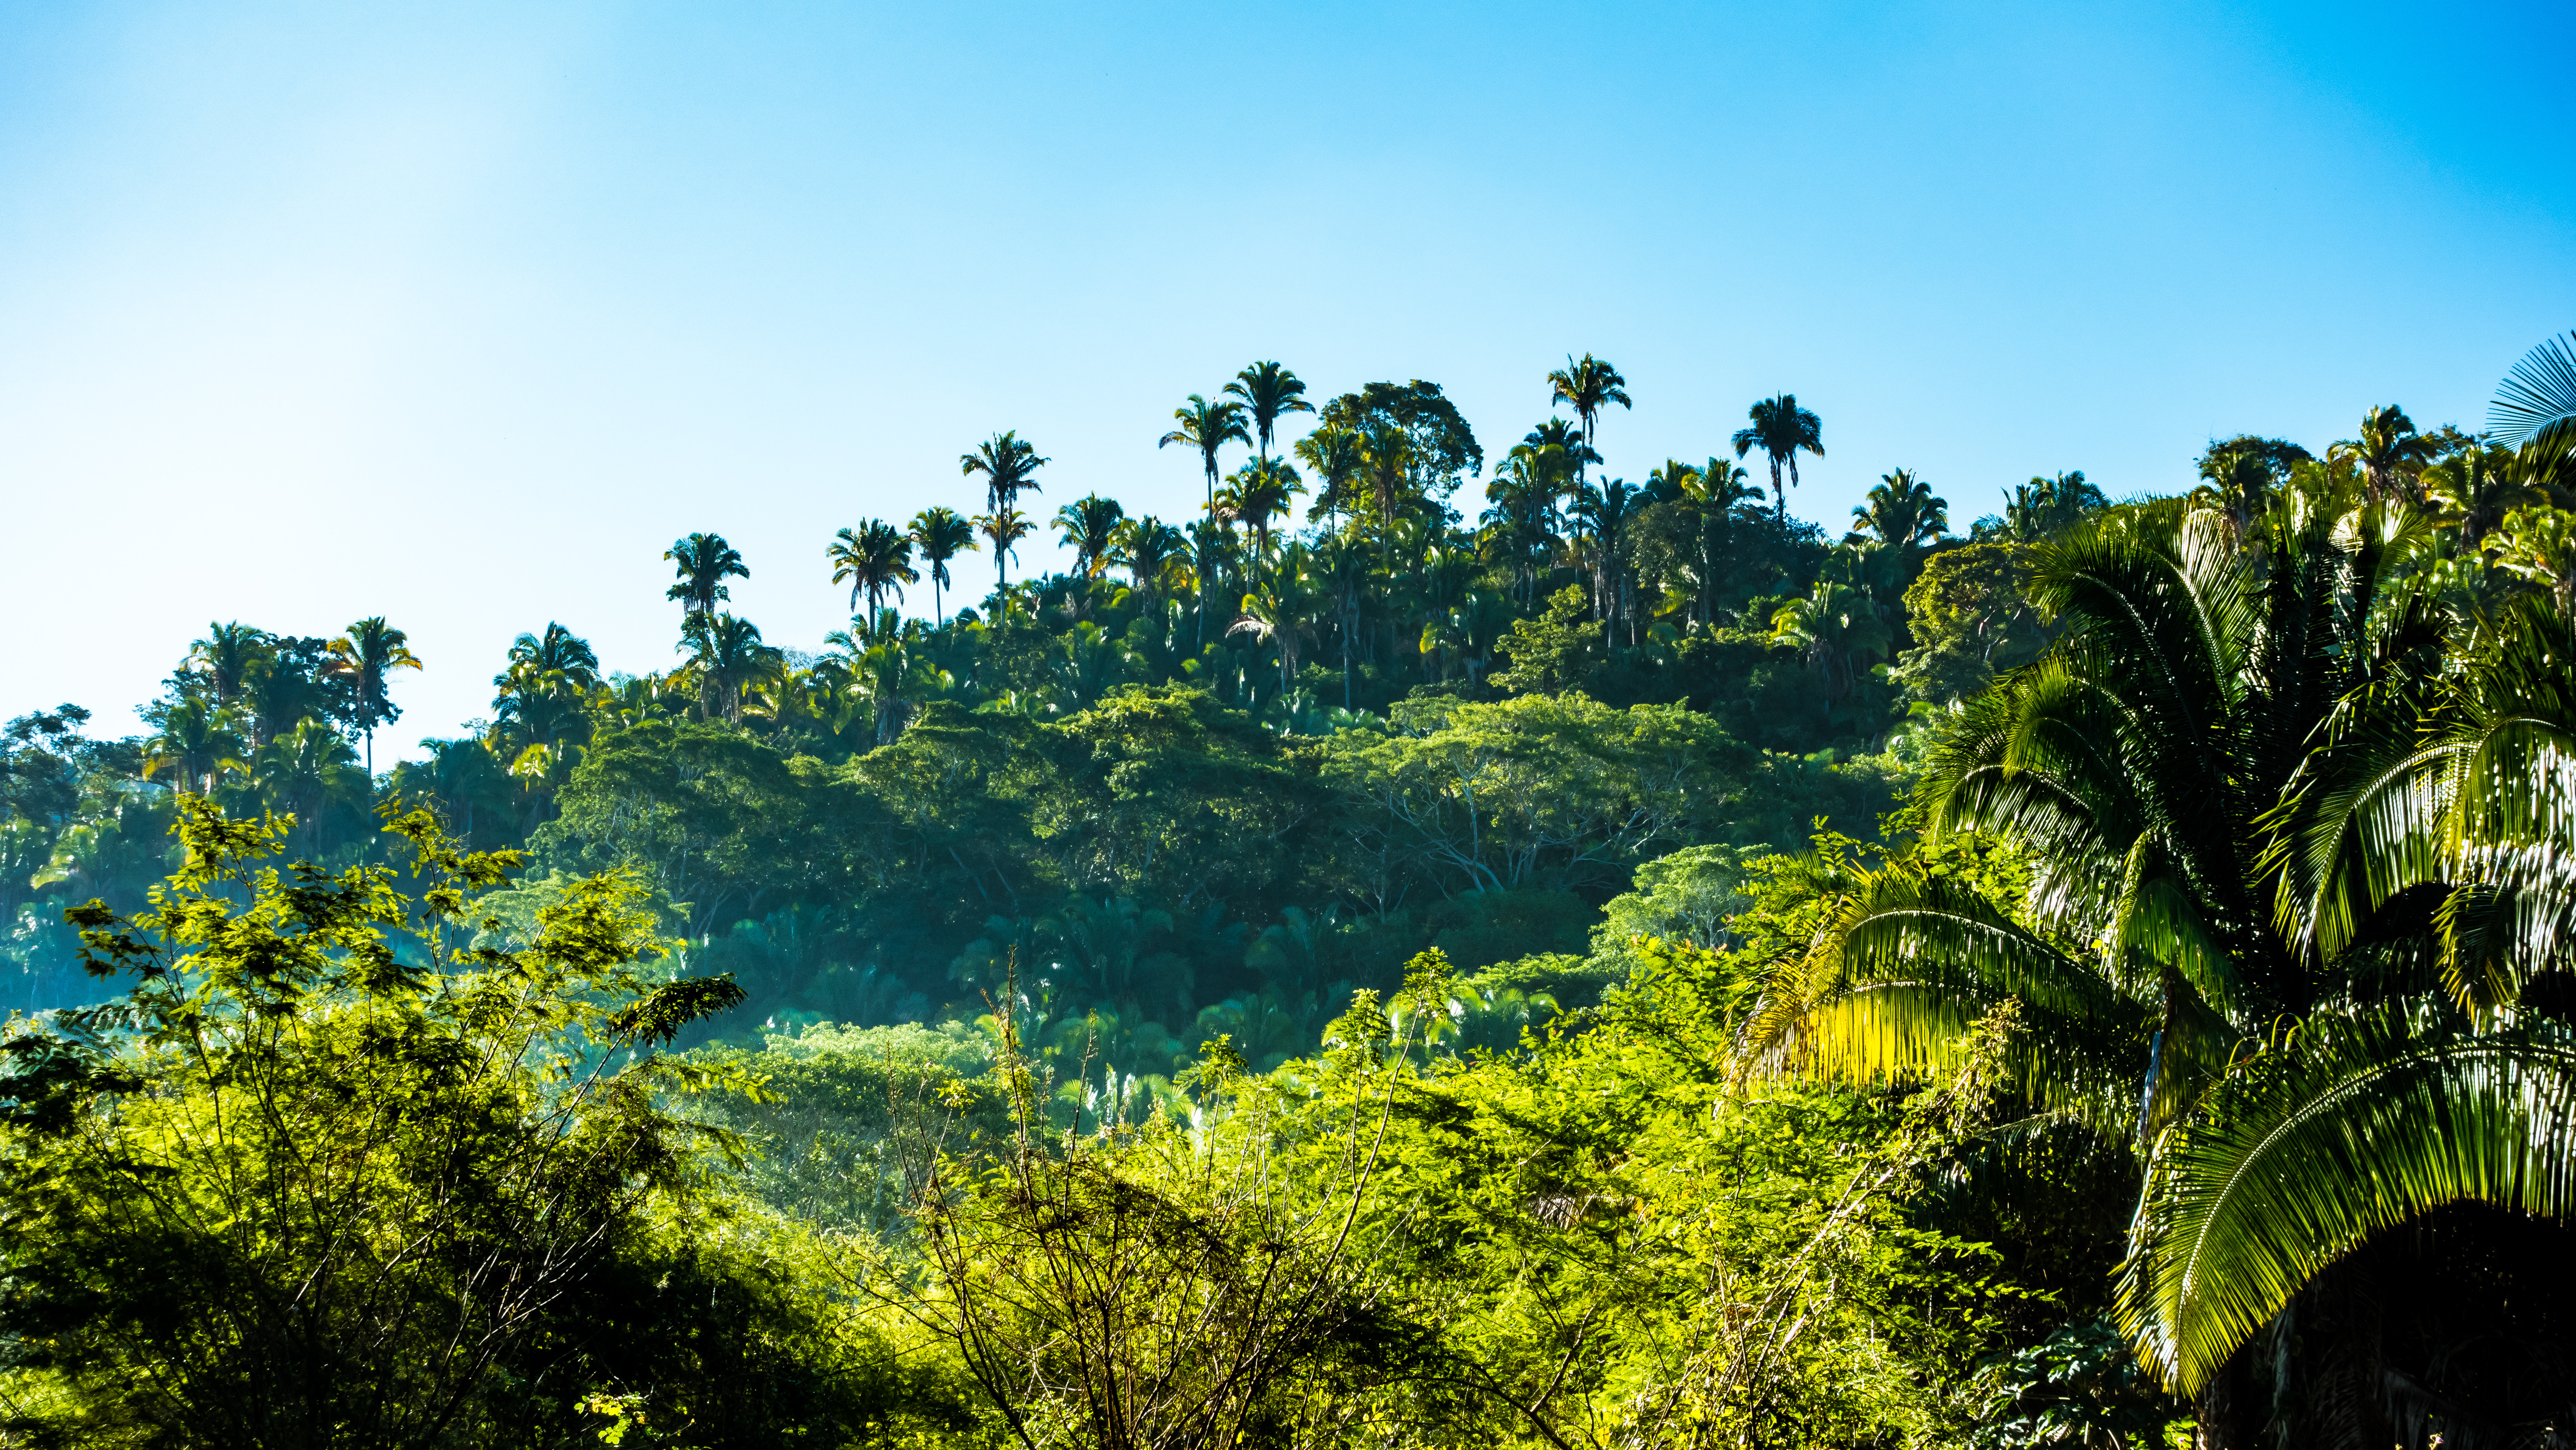 Green Forest Wallpaper Hd 200 Great Jungle Photos 183 Pexels 183 Free Stock Photos